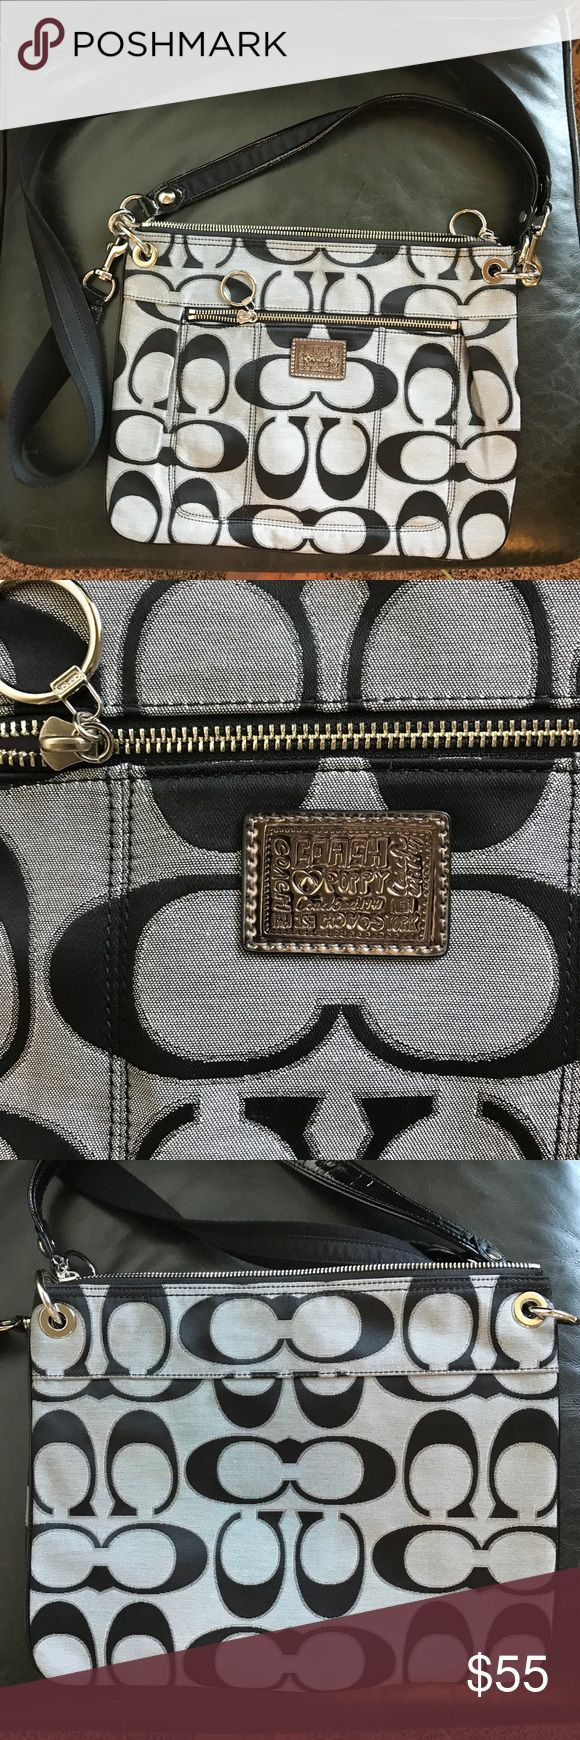 "Coach Poppy gray and black logo midsize bag Perfect condition Coach Poppy bag! Great for day to day wear, comes with detachable shoulder strap. Dimensions approx 13.5"" wide by 10.5"" tall Coach Bags Shoulder Bags"